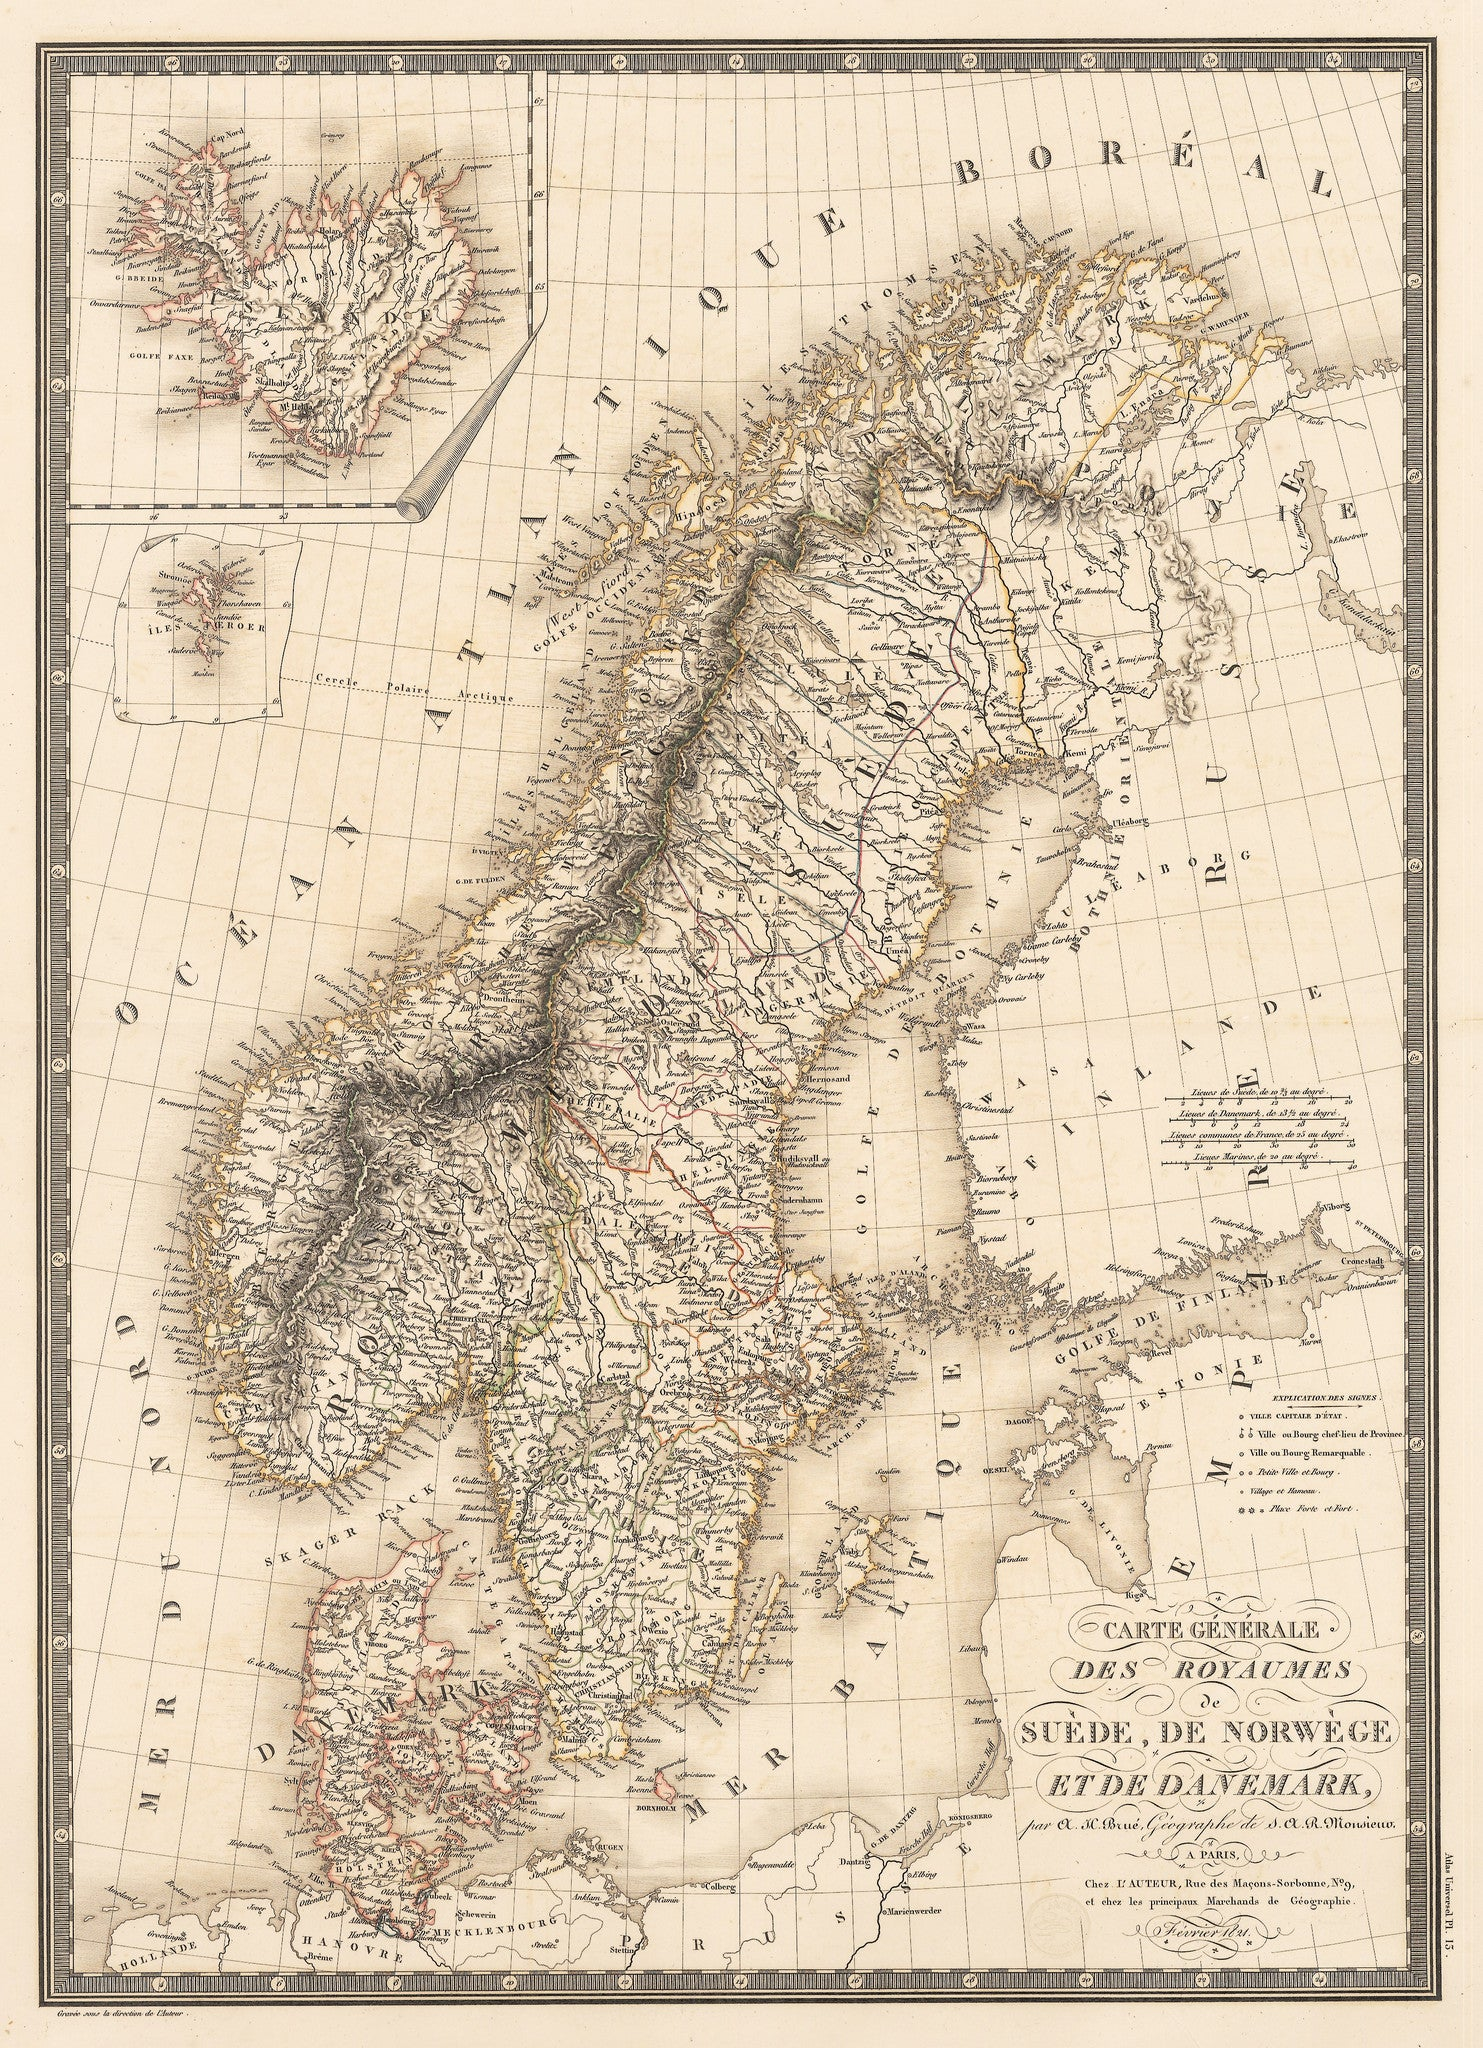 Authentic Antique Map of the Baltic countries showing Norway, Sweden and Denmark: Carte Generale des Royaumes de Suede de Norwege et de Danemark By: Adrien-Hubert BrueDate: Febuary, 1821 (dated)